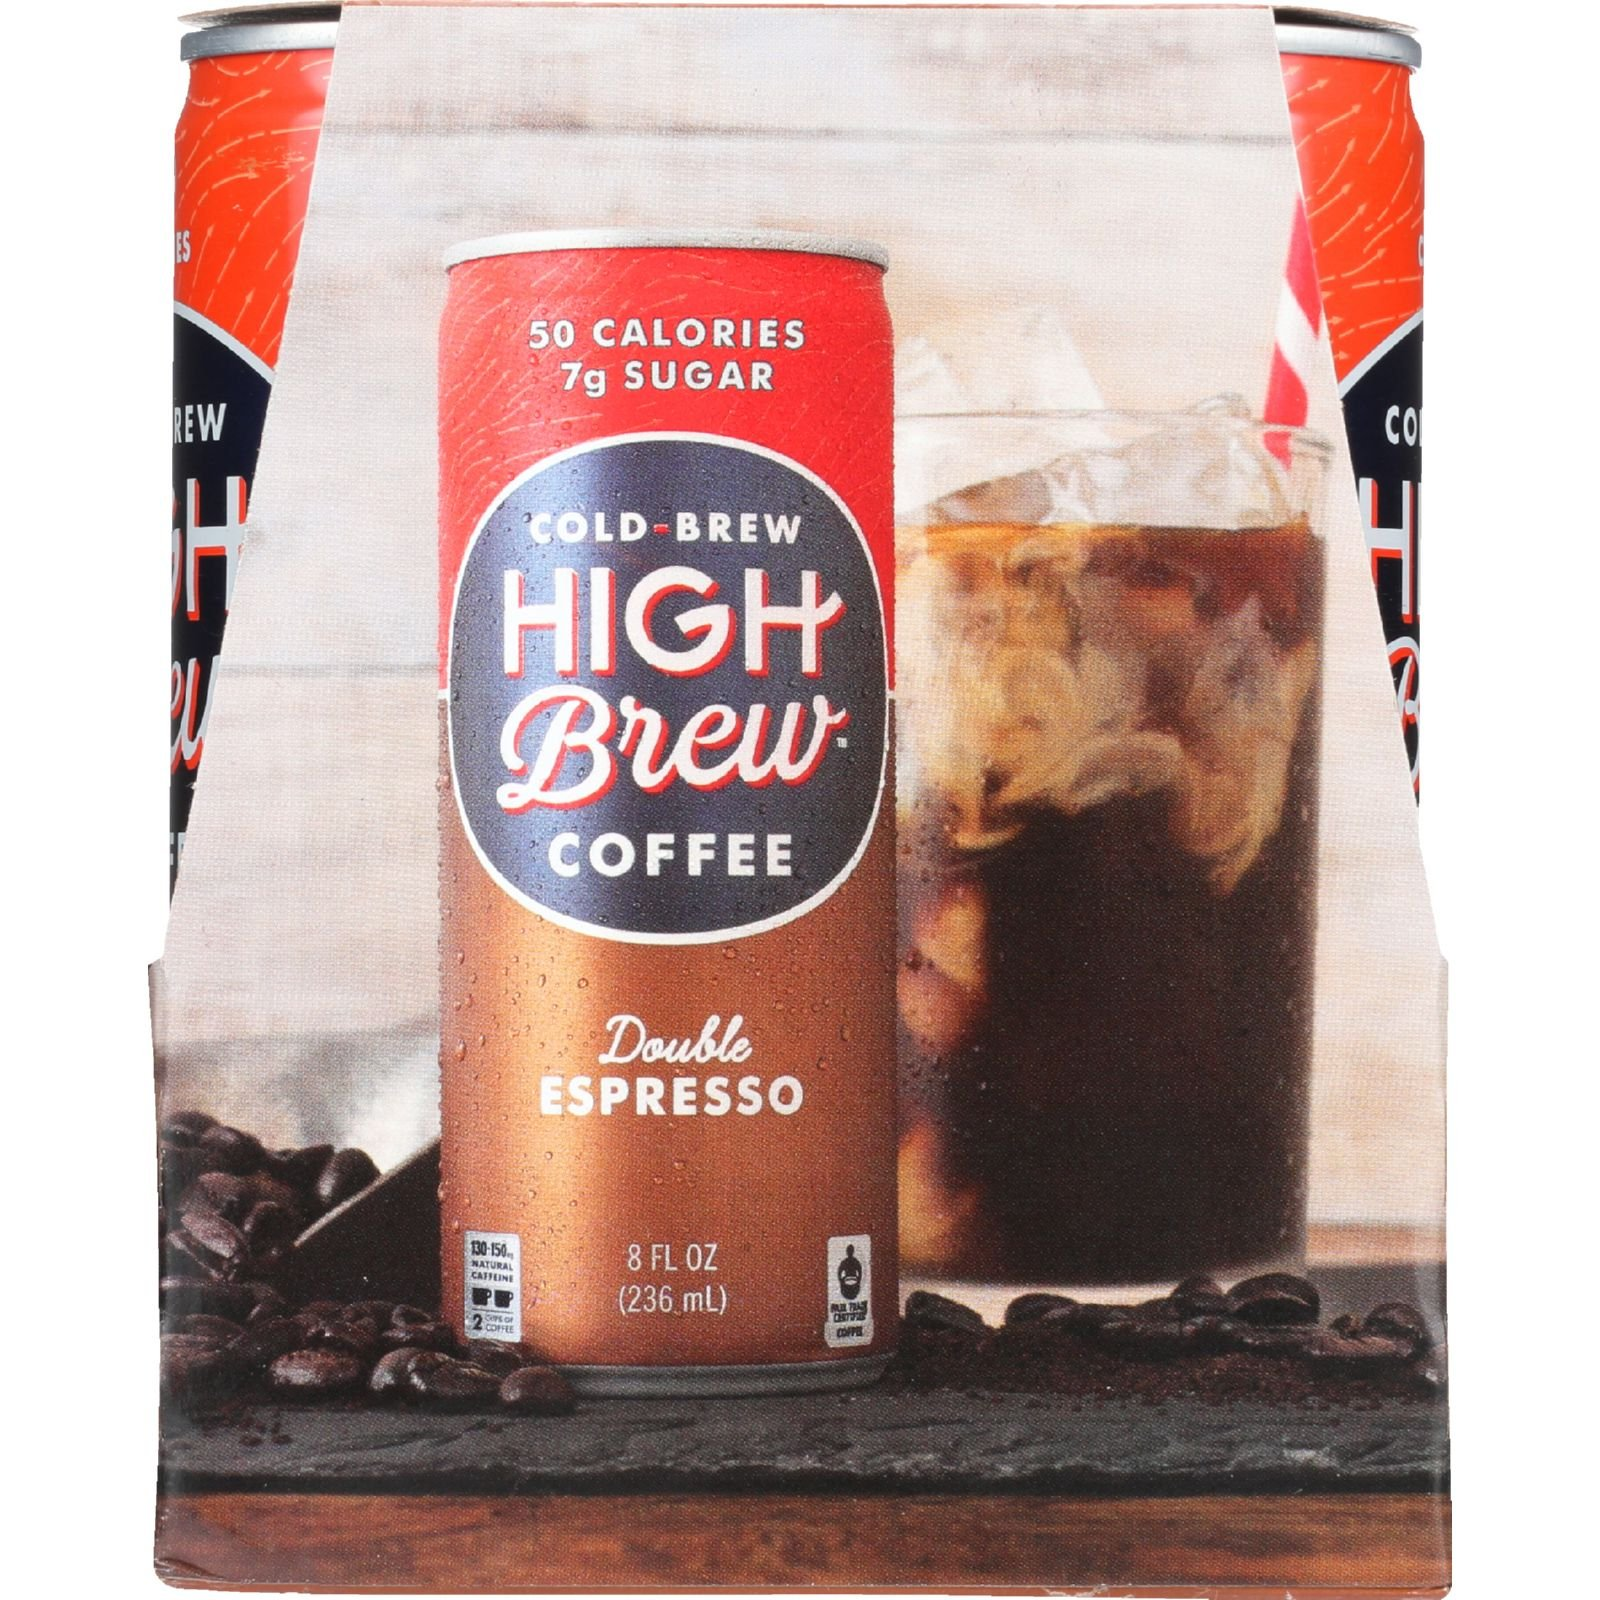 High Brew Coffee Coffee - Ready to Drink - Double Espresso - 4/8 oz - case of 6 - Gluten Free - Dairy Free by High Brew Coffee